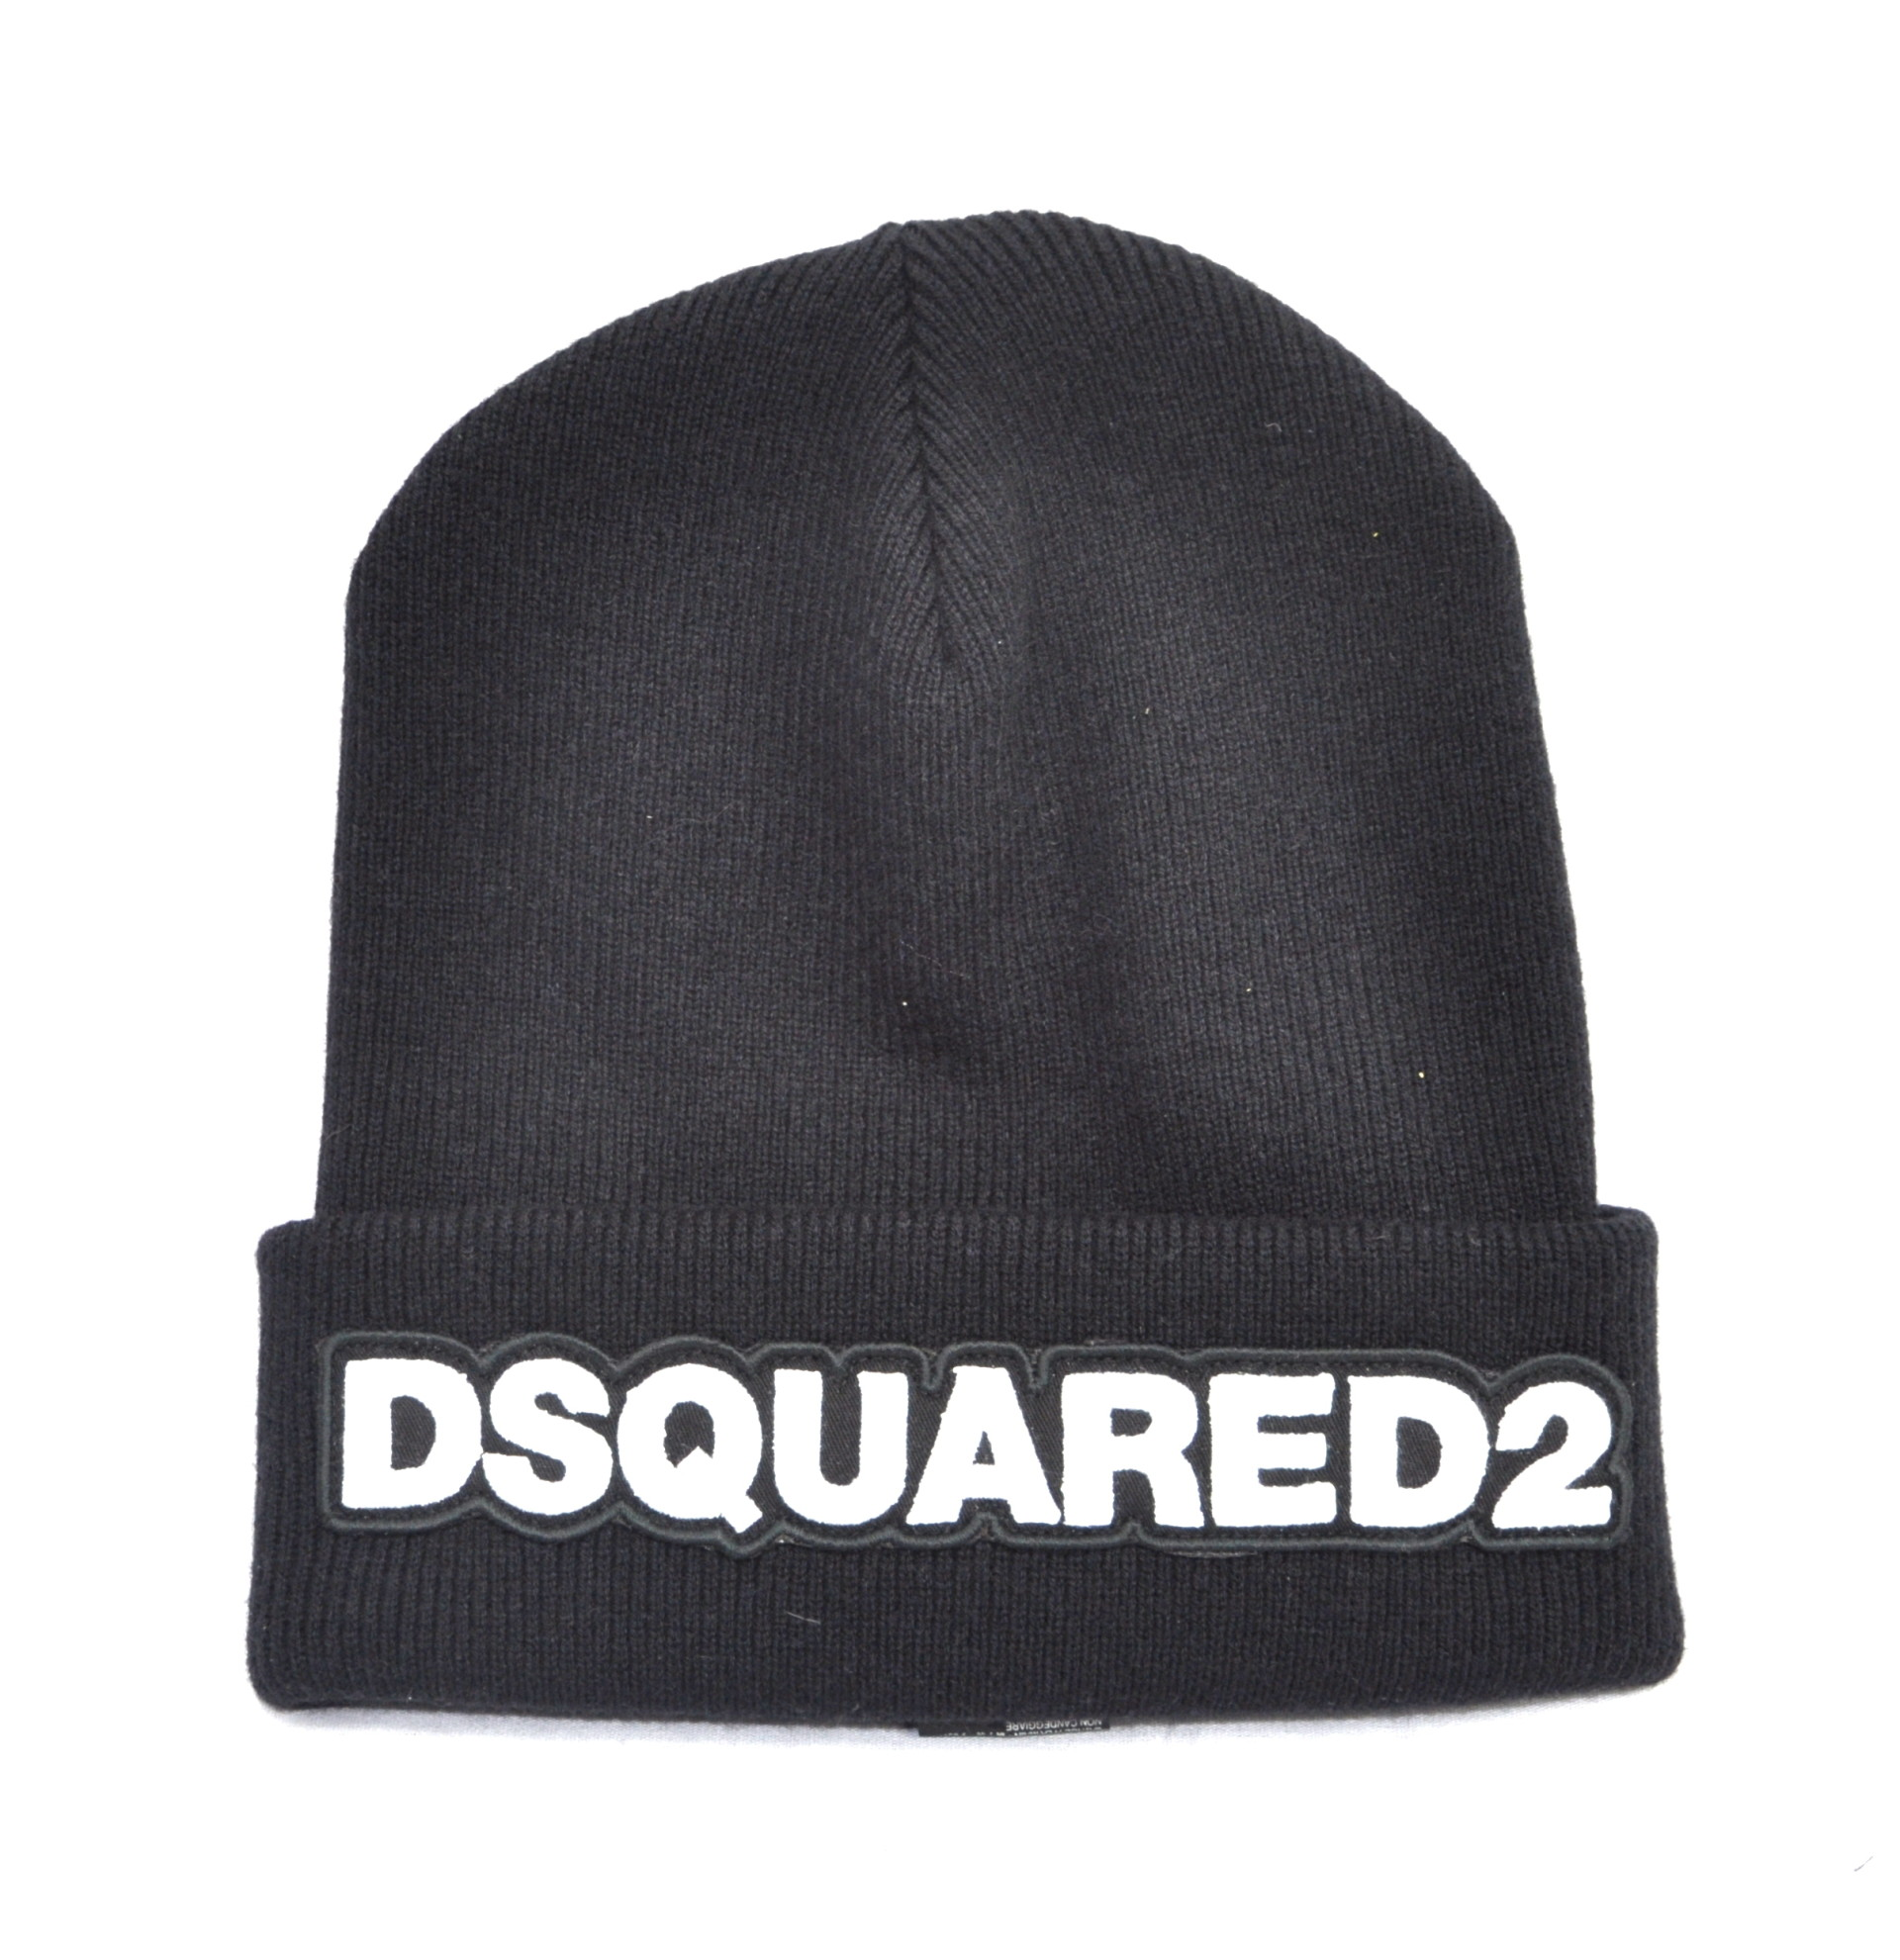 5f4bc2d57351f Dsquared2 Beanie Branded Hat Black White Muts Zwart Wit - AW1819 ...